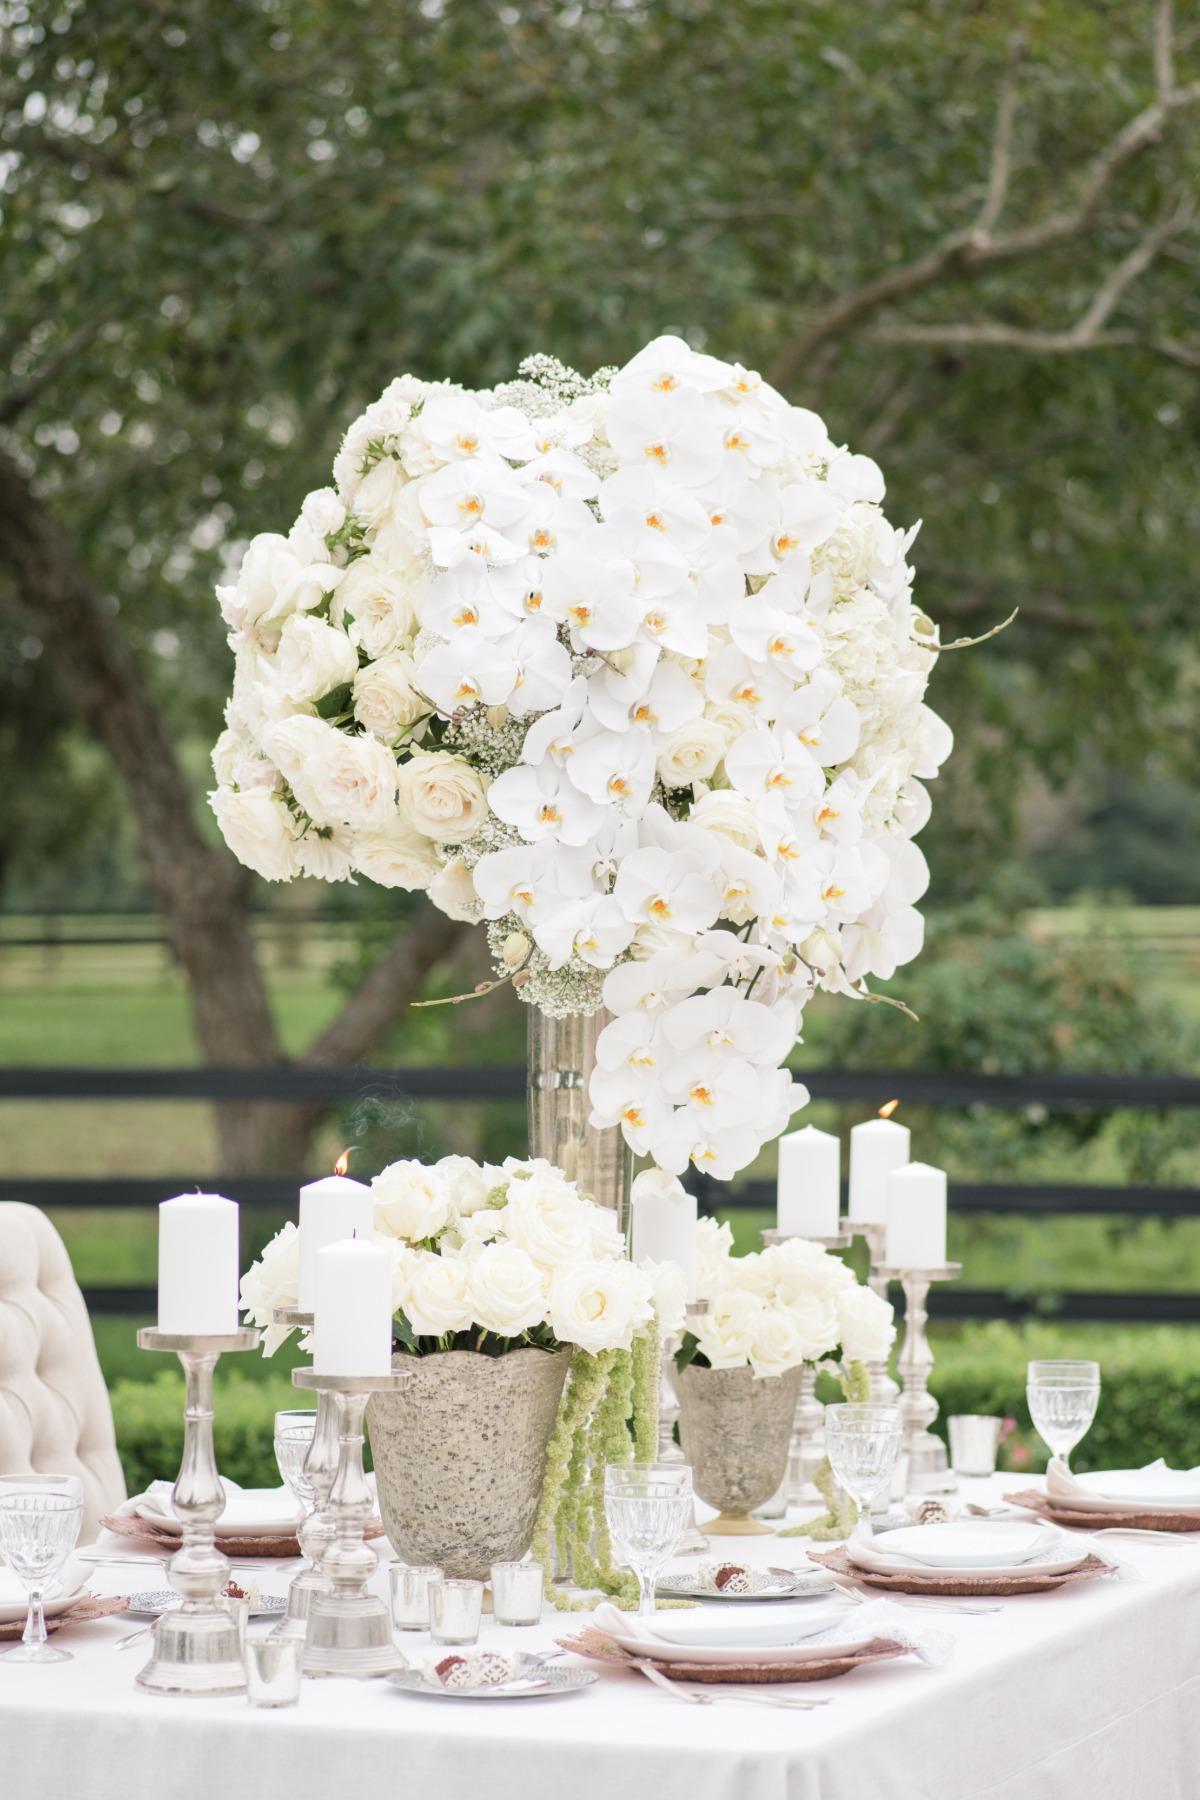 All-white wedding centerpiece